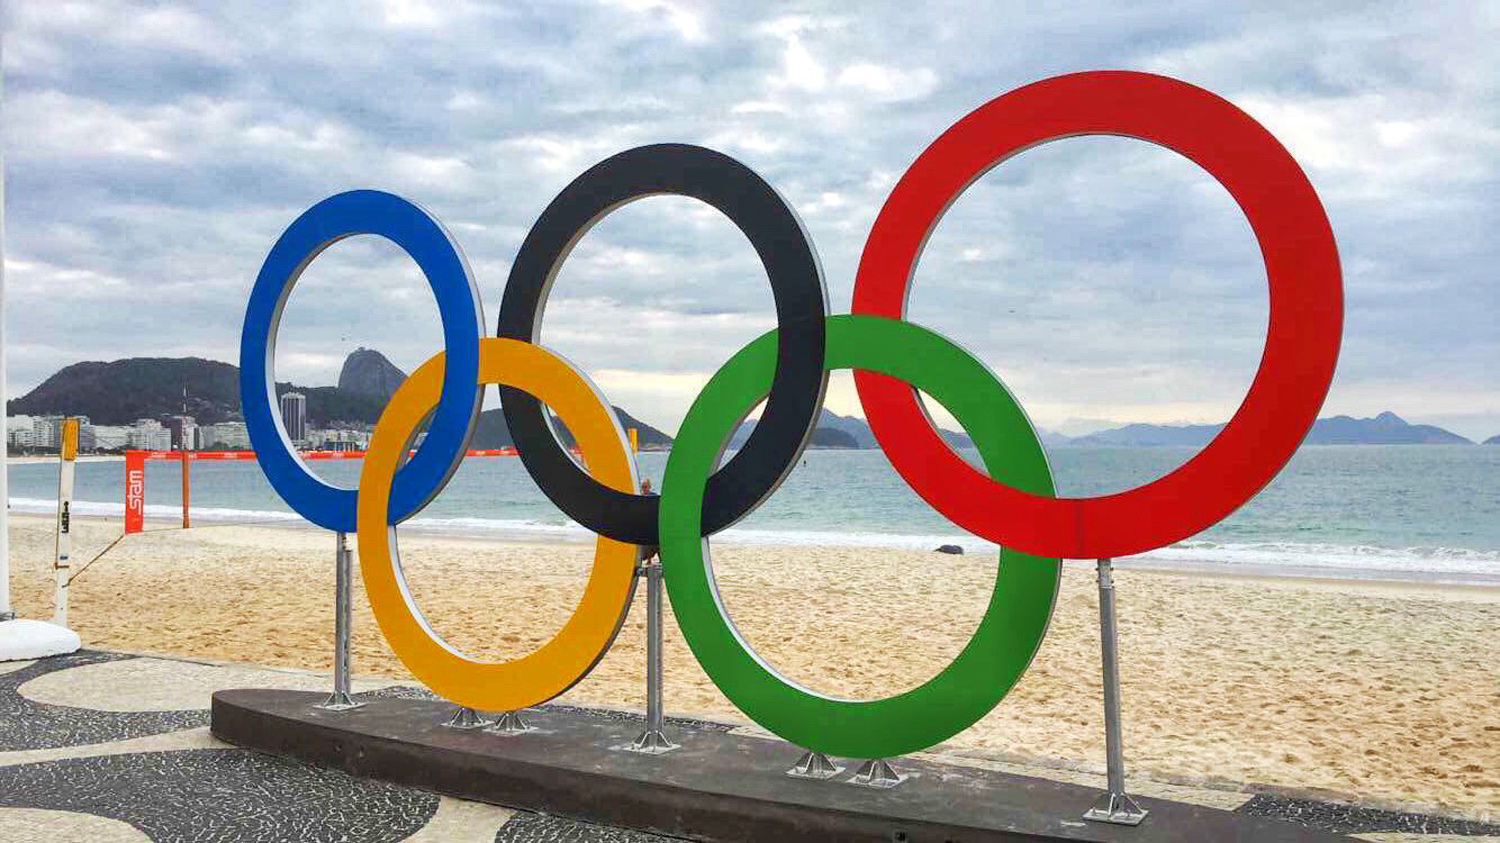 The Equipment I am taking to the Olympic Games in Rio 2016